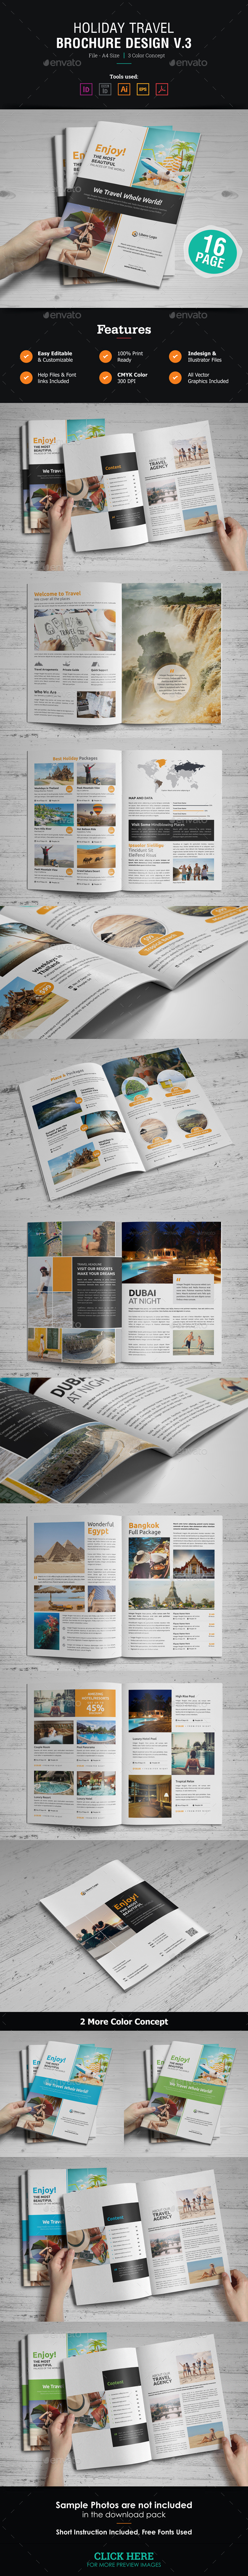 Holiday Travel Brochure Design v3 - Corporate Brochures